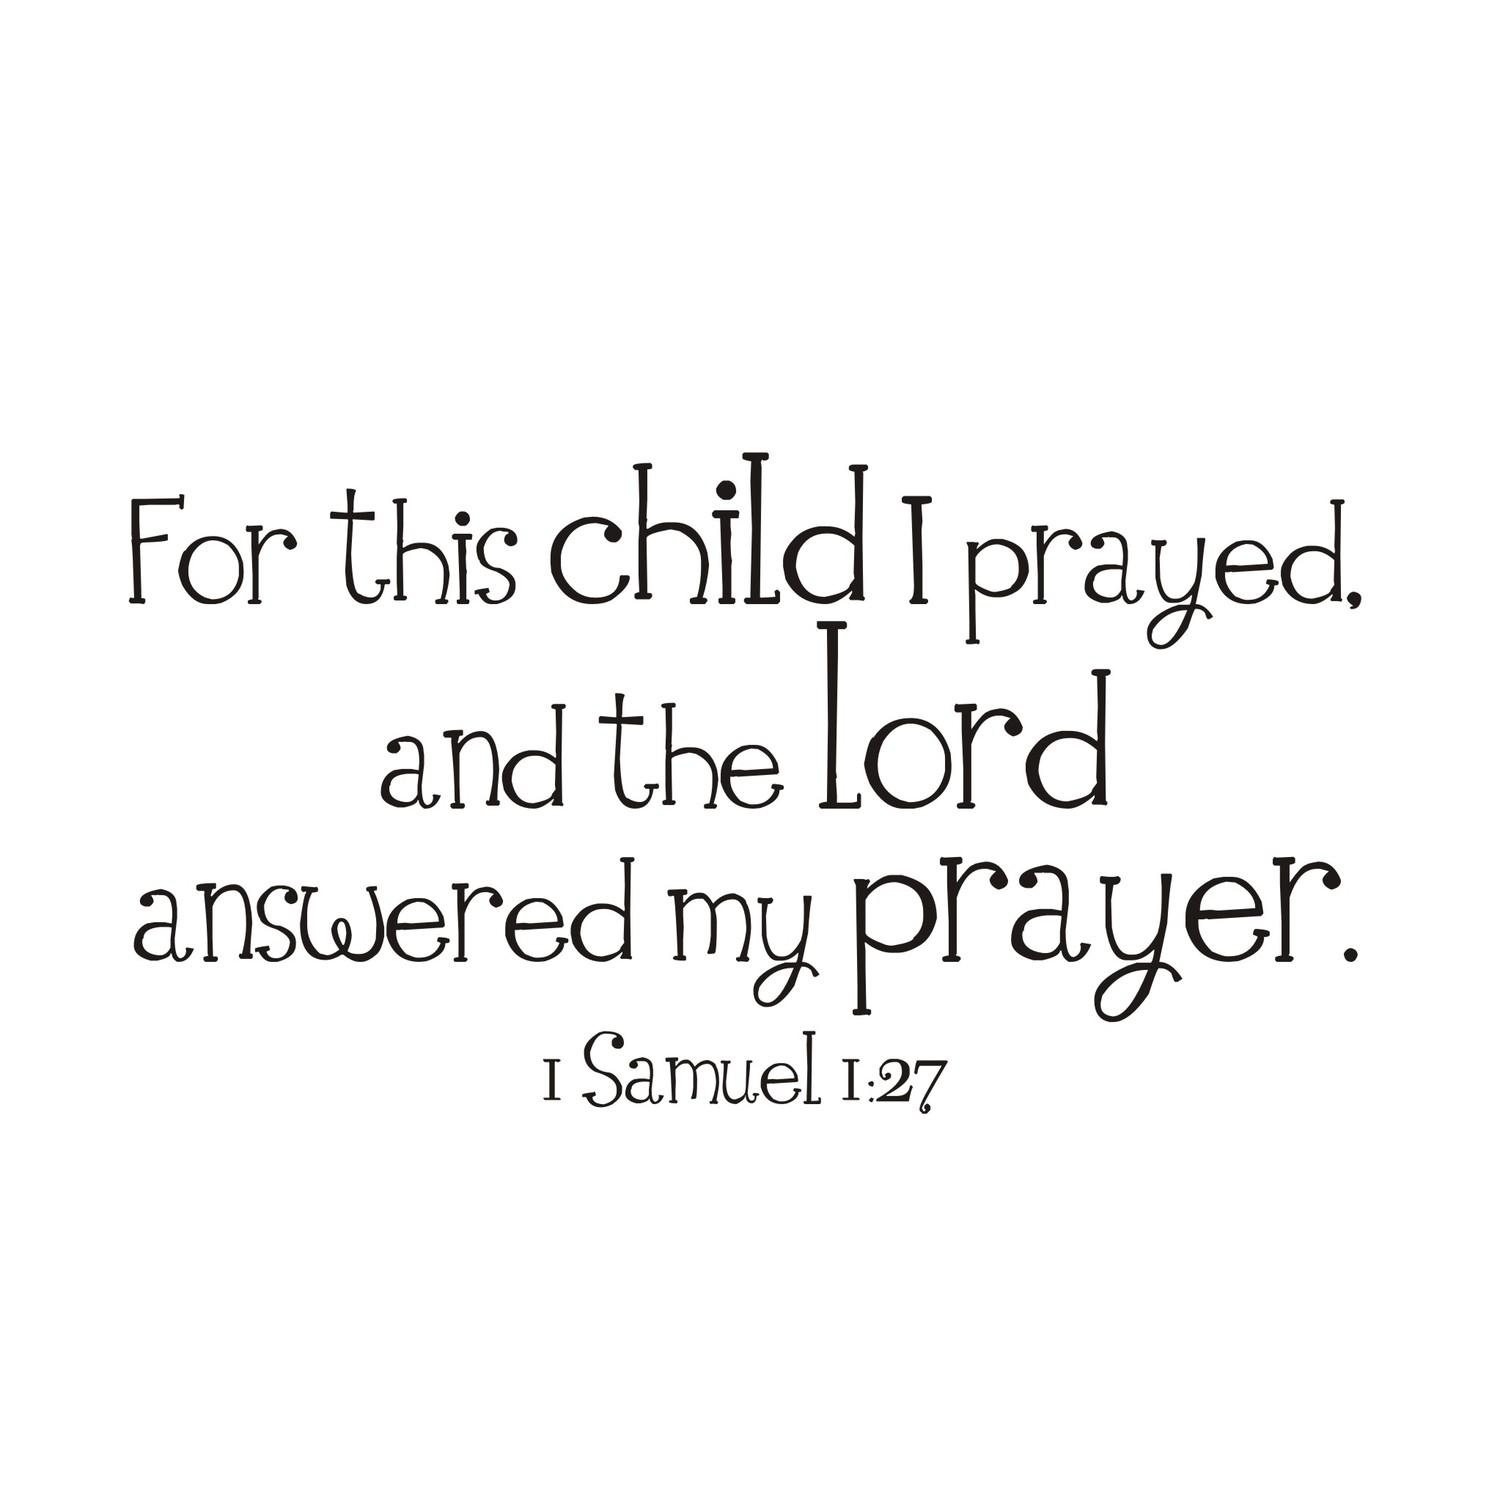 For This Child I Prayed 1 Samuel 1:27 Vinyl Wall Decal Throughout For This Child I Prayed Wall Art (Image 11 of 20)